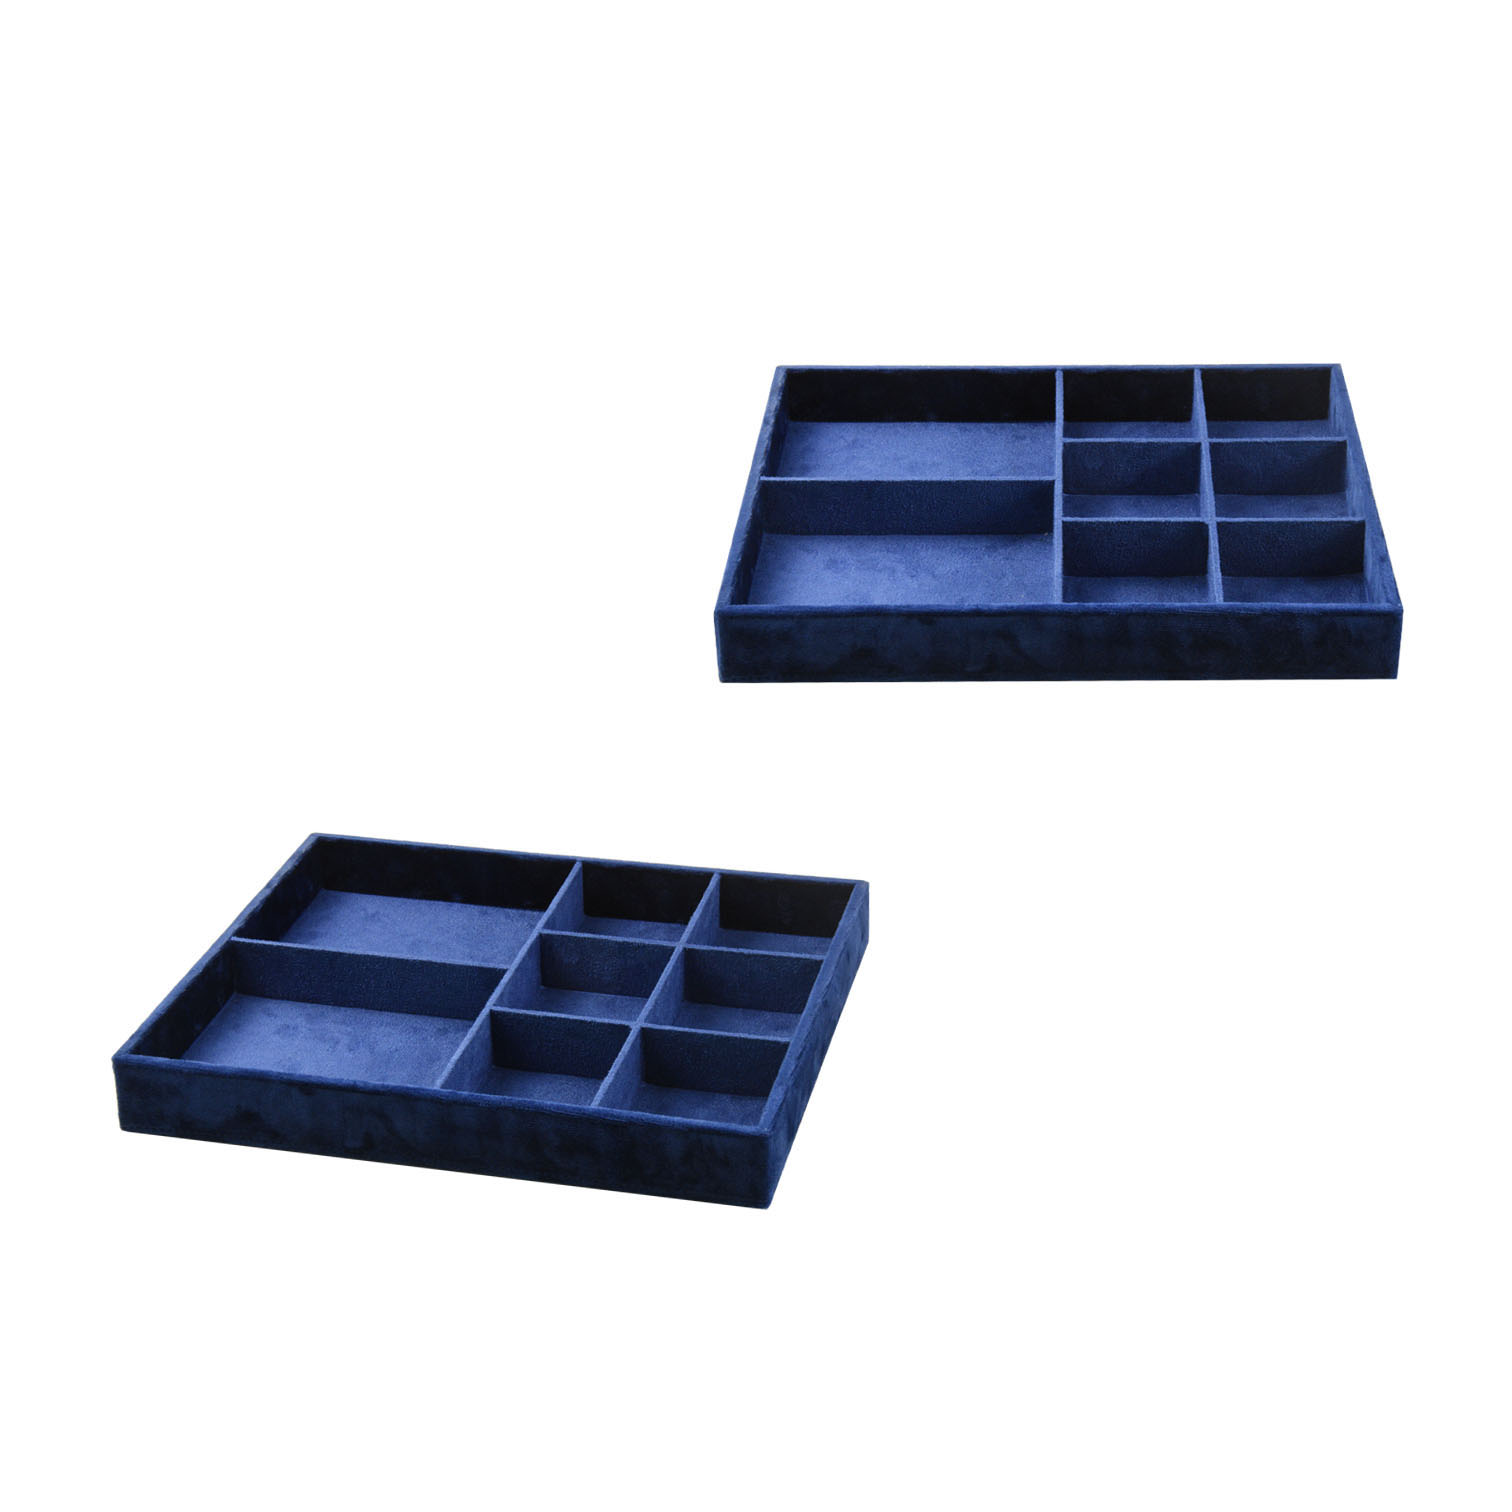 Custom luxury royal blue velvet eight slots jewelry tray desktop organizer